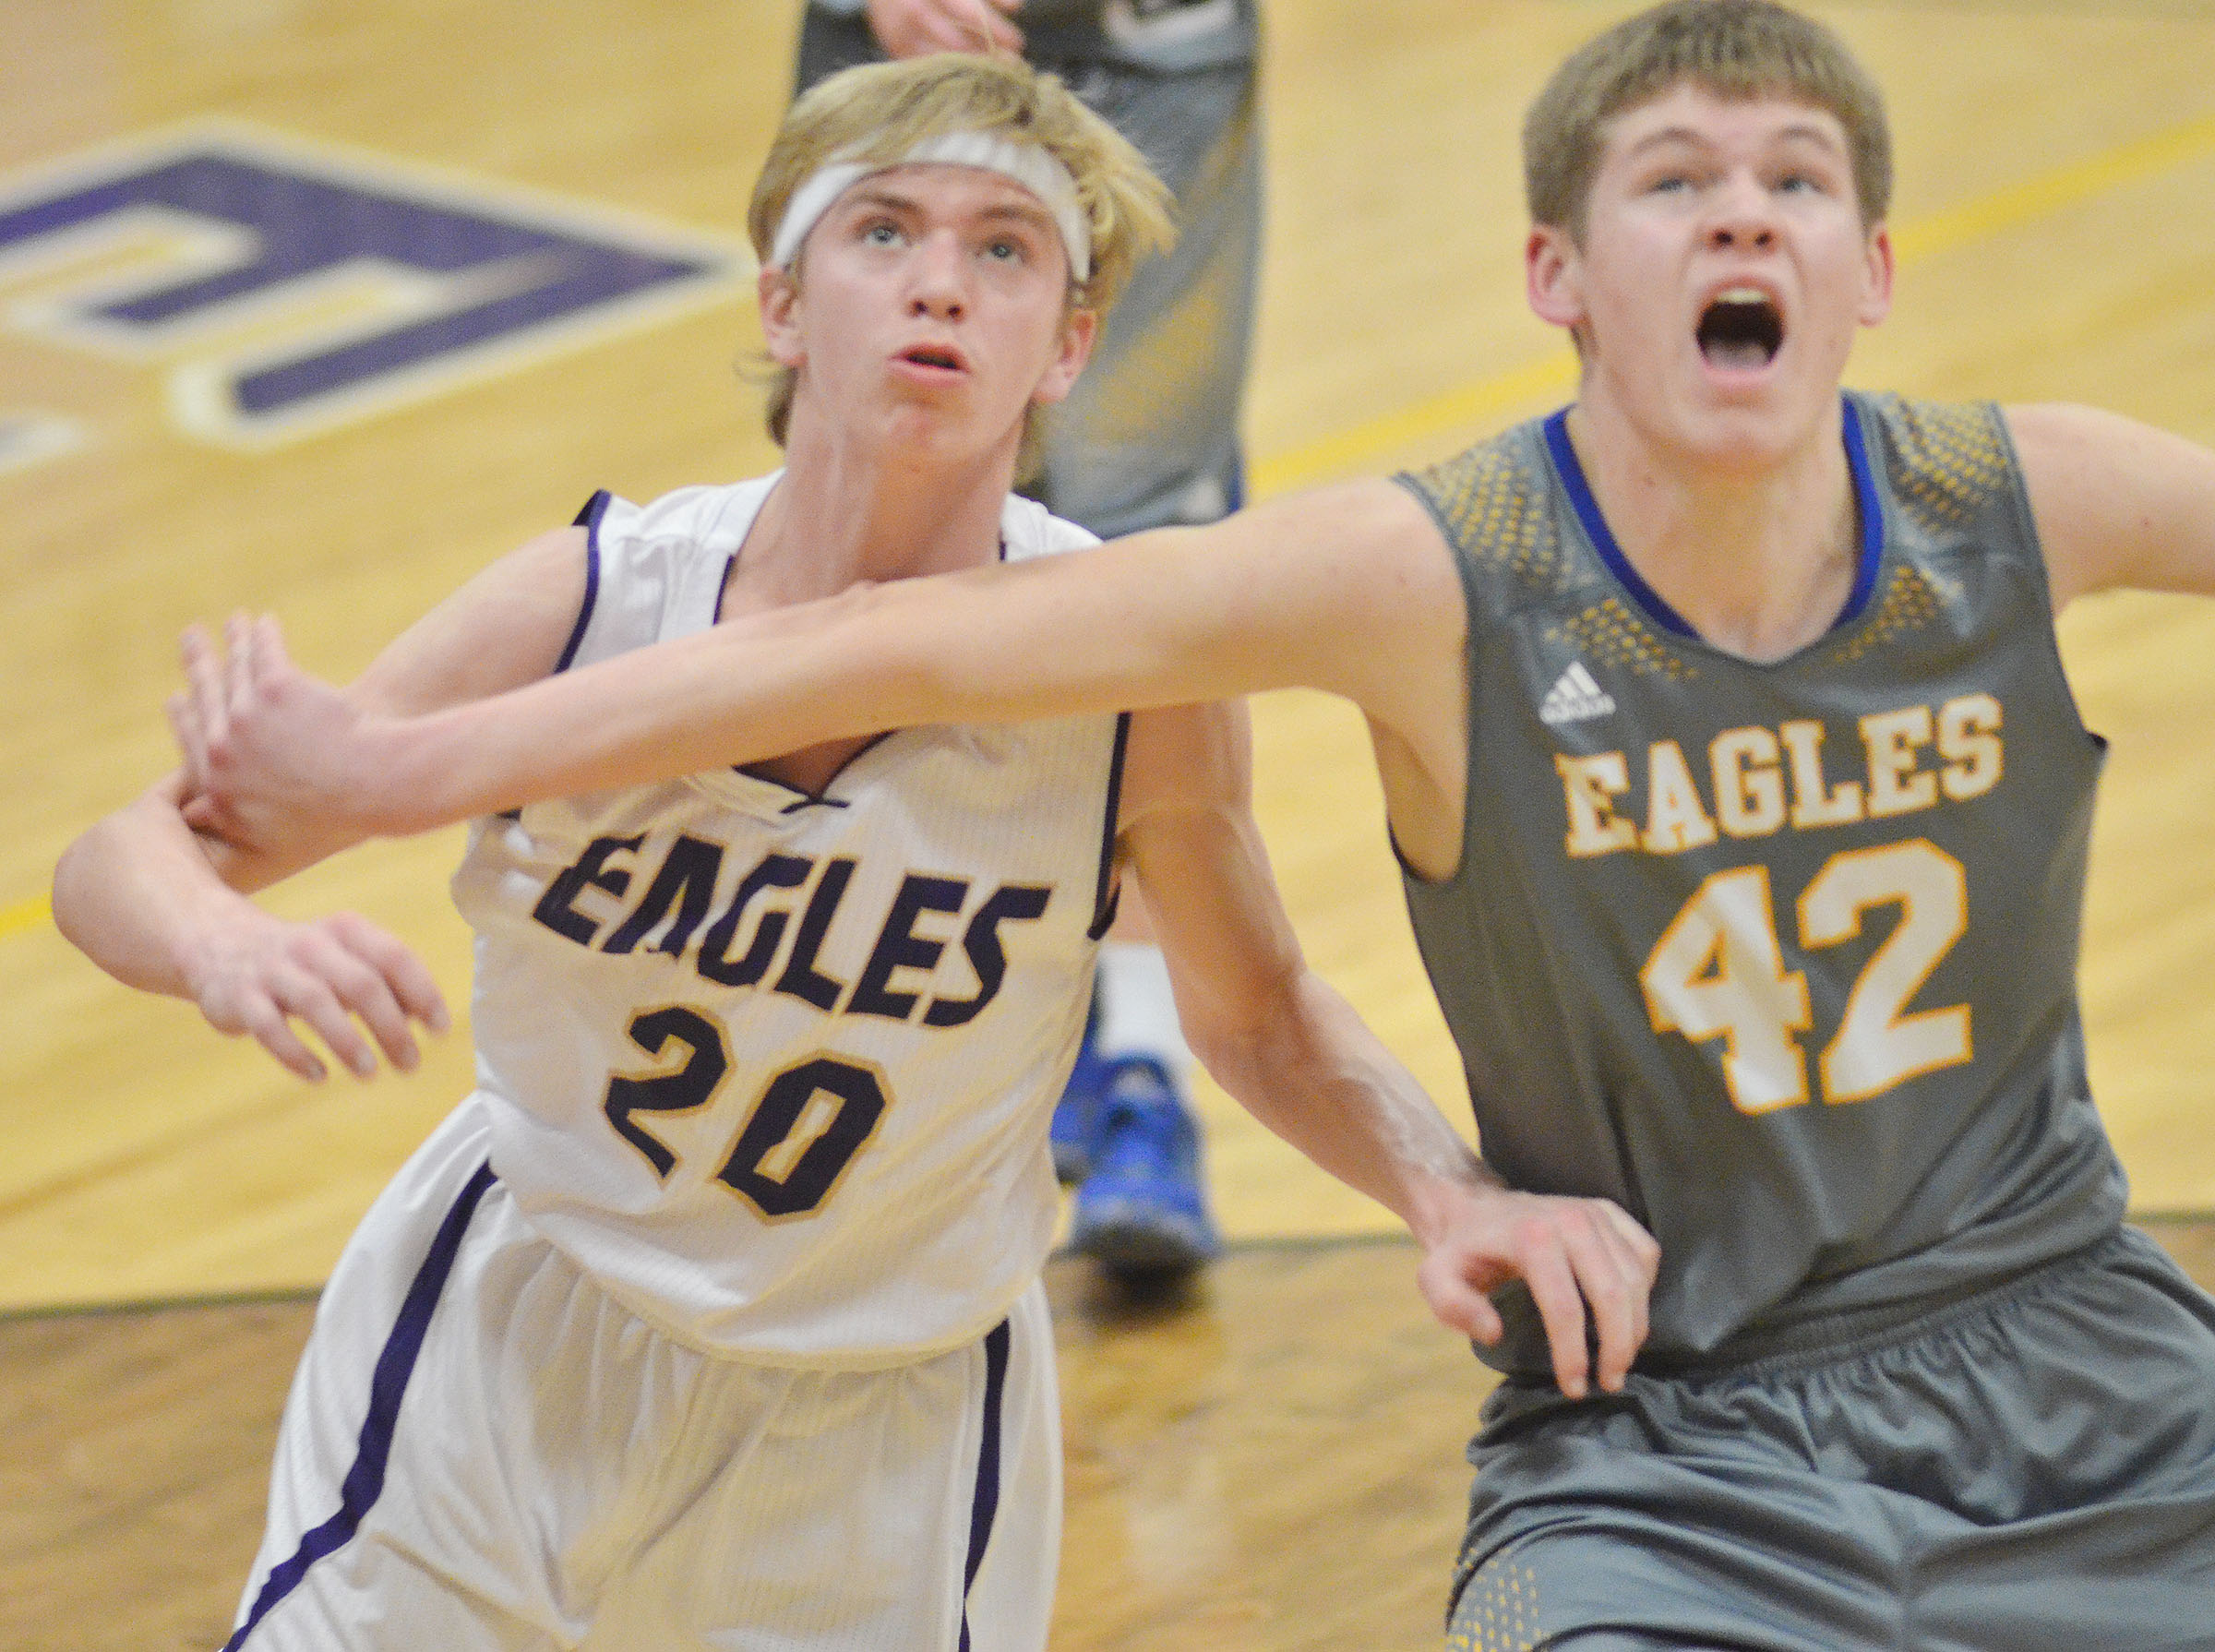 Campbellsville Middle School eighth-grader Arren Hash battles for a rebound.